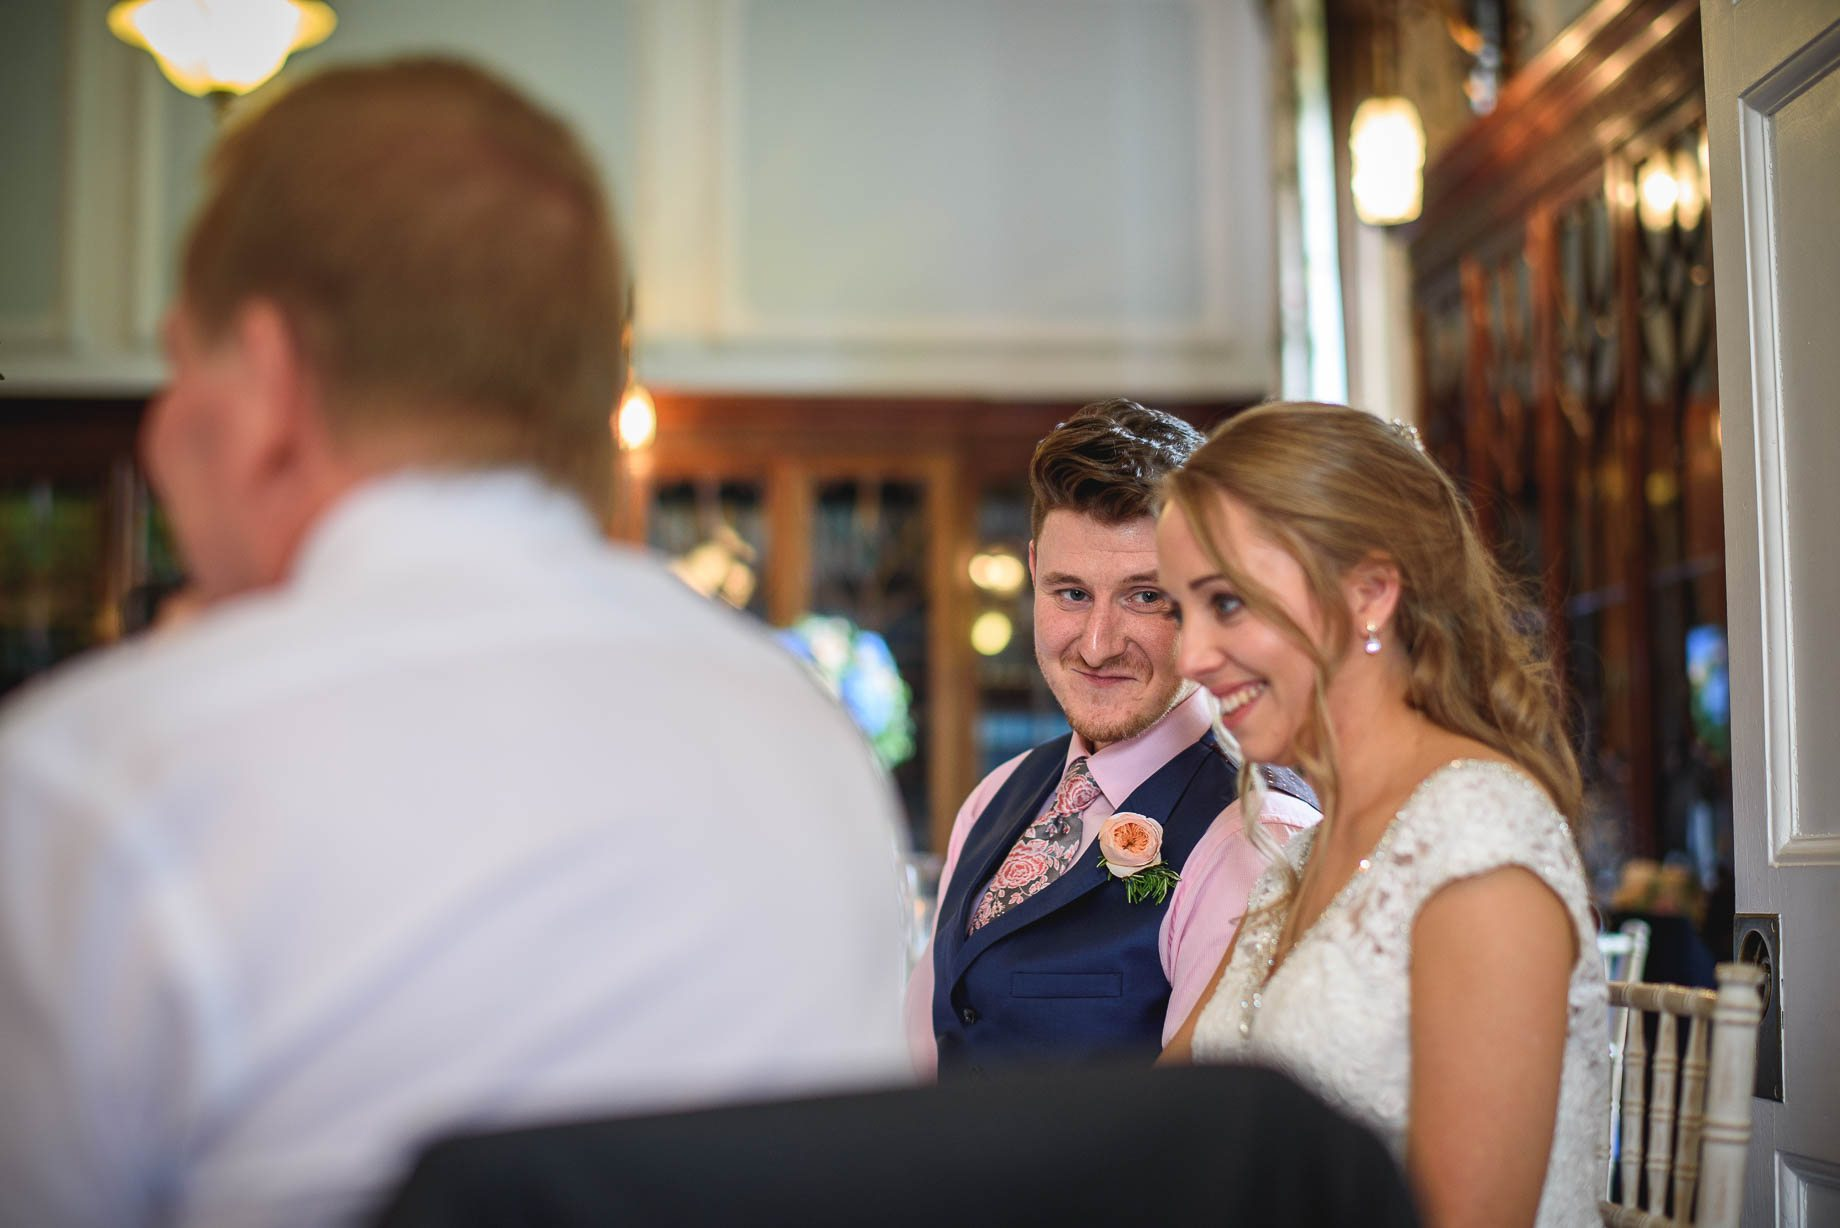 Hampshire wedding photography by Guy Collier - Emily and Tom (110 of 164)